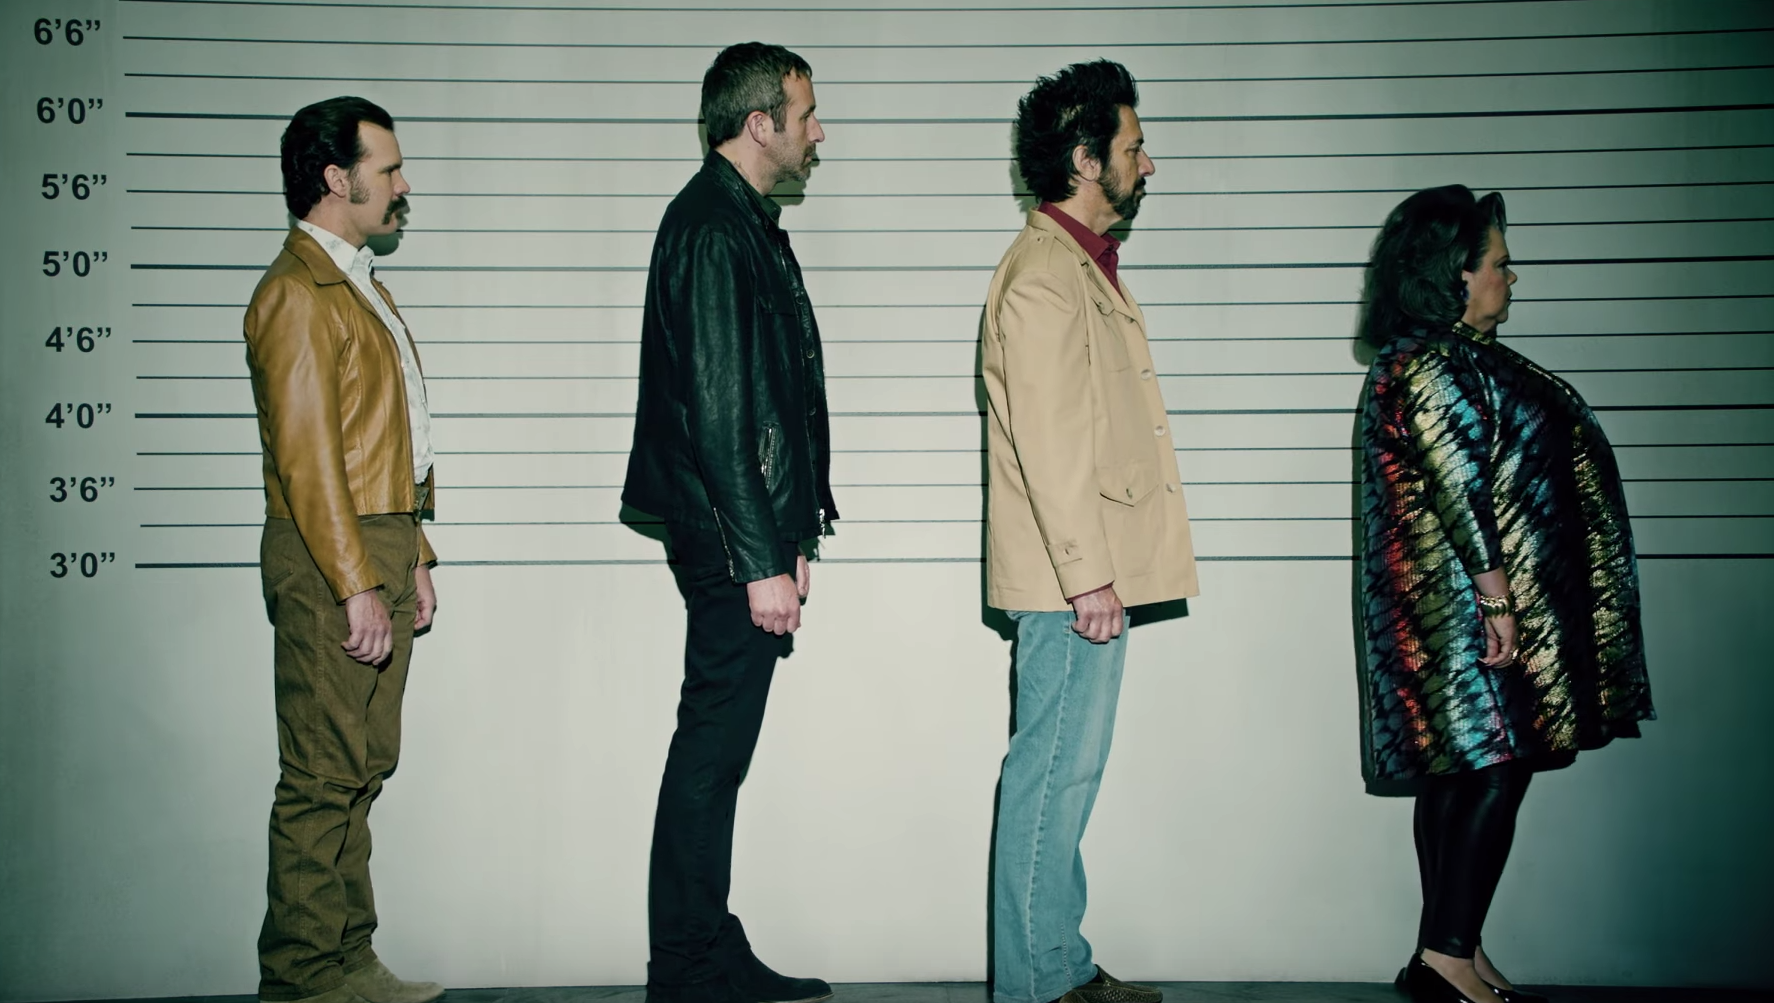 Get Shorty Season 2 Teaser Trailer: Red Carpet Becomes Police Lineup ...